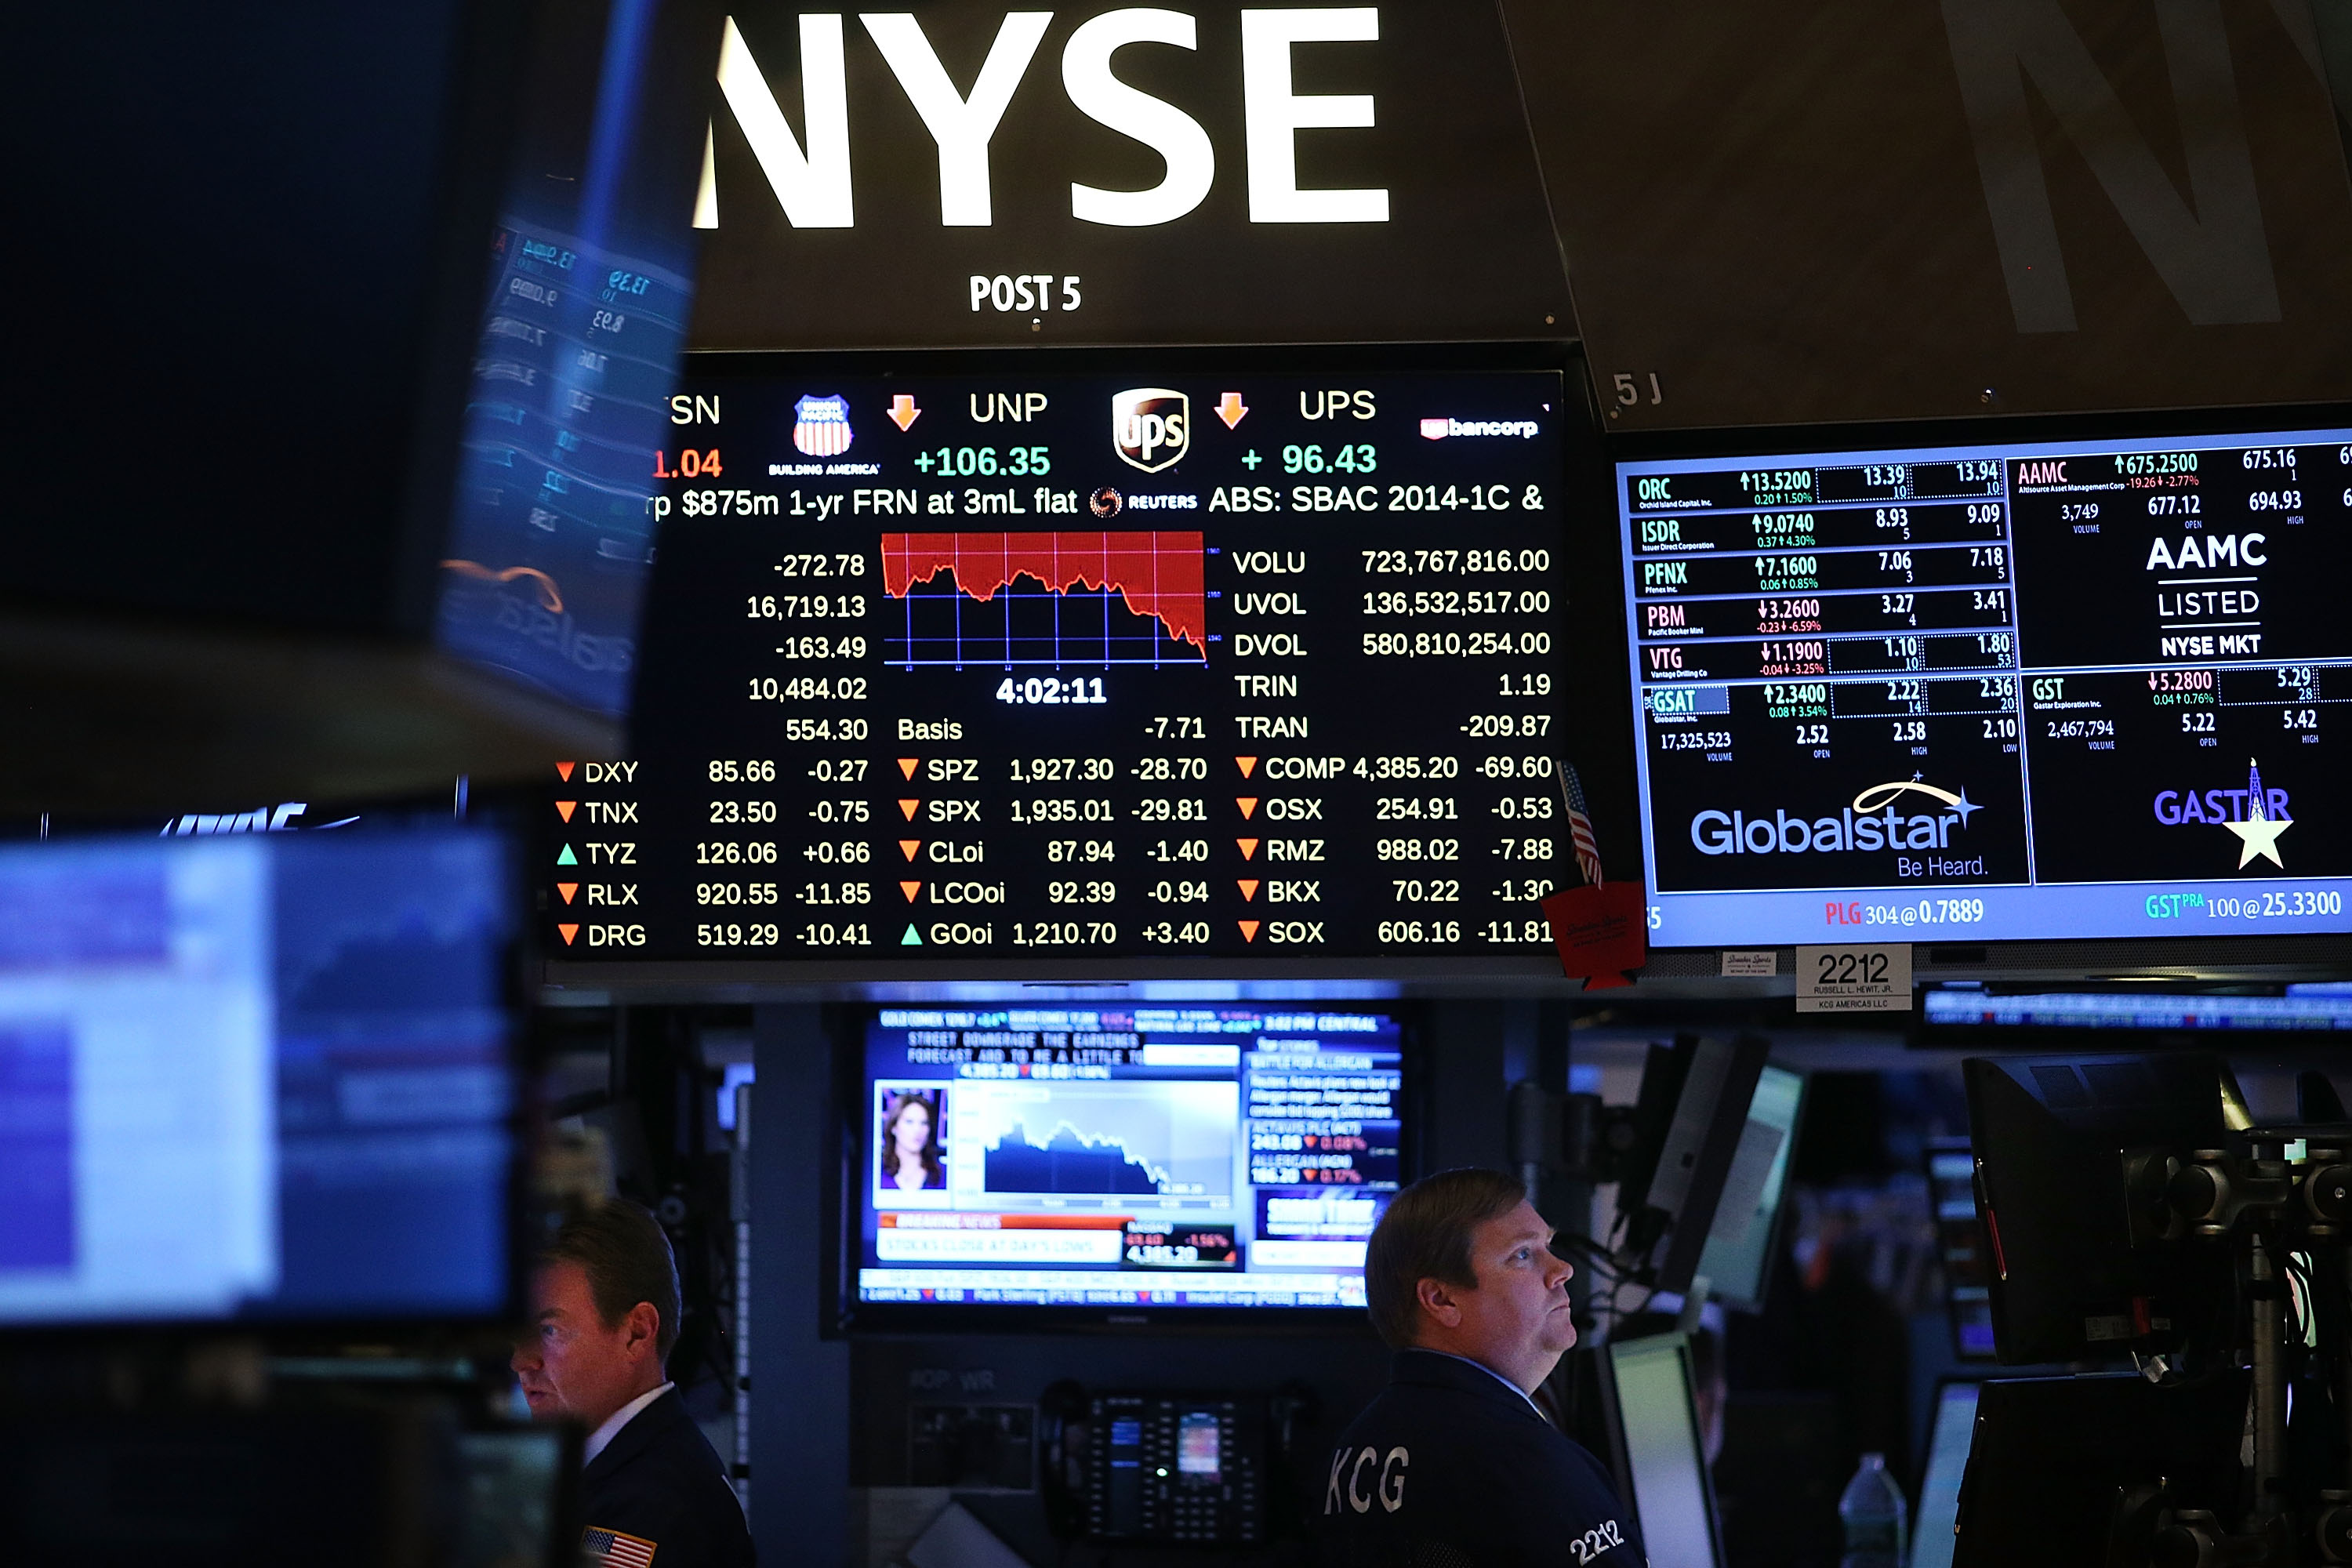 Traders work on the floor of the New York Stock Exchange (NYSE) on October 7, 2014 in New York City. The market had one of its worst days so far in 2014 with the Dow falling 273 points following news of a slowdown in the global economy.